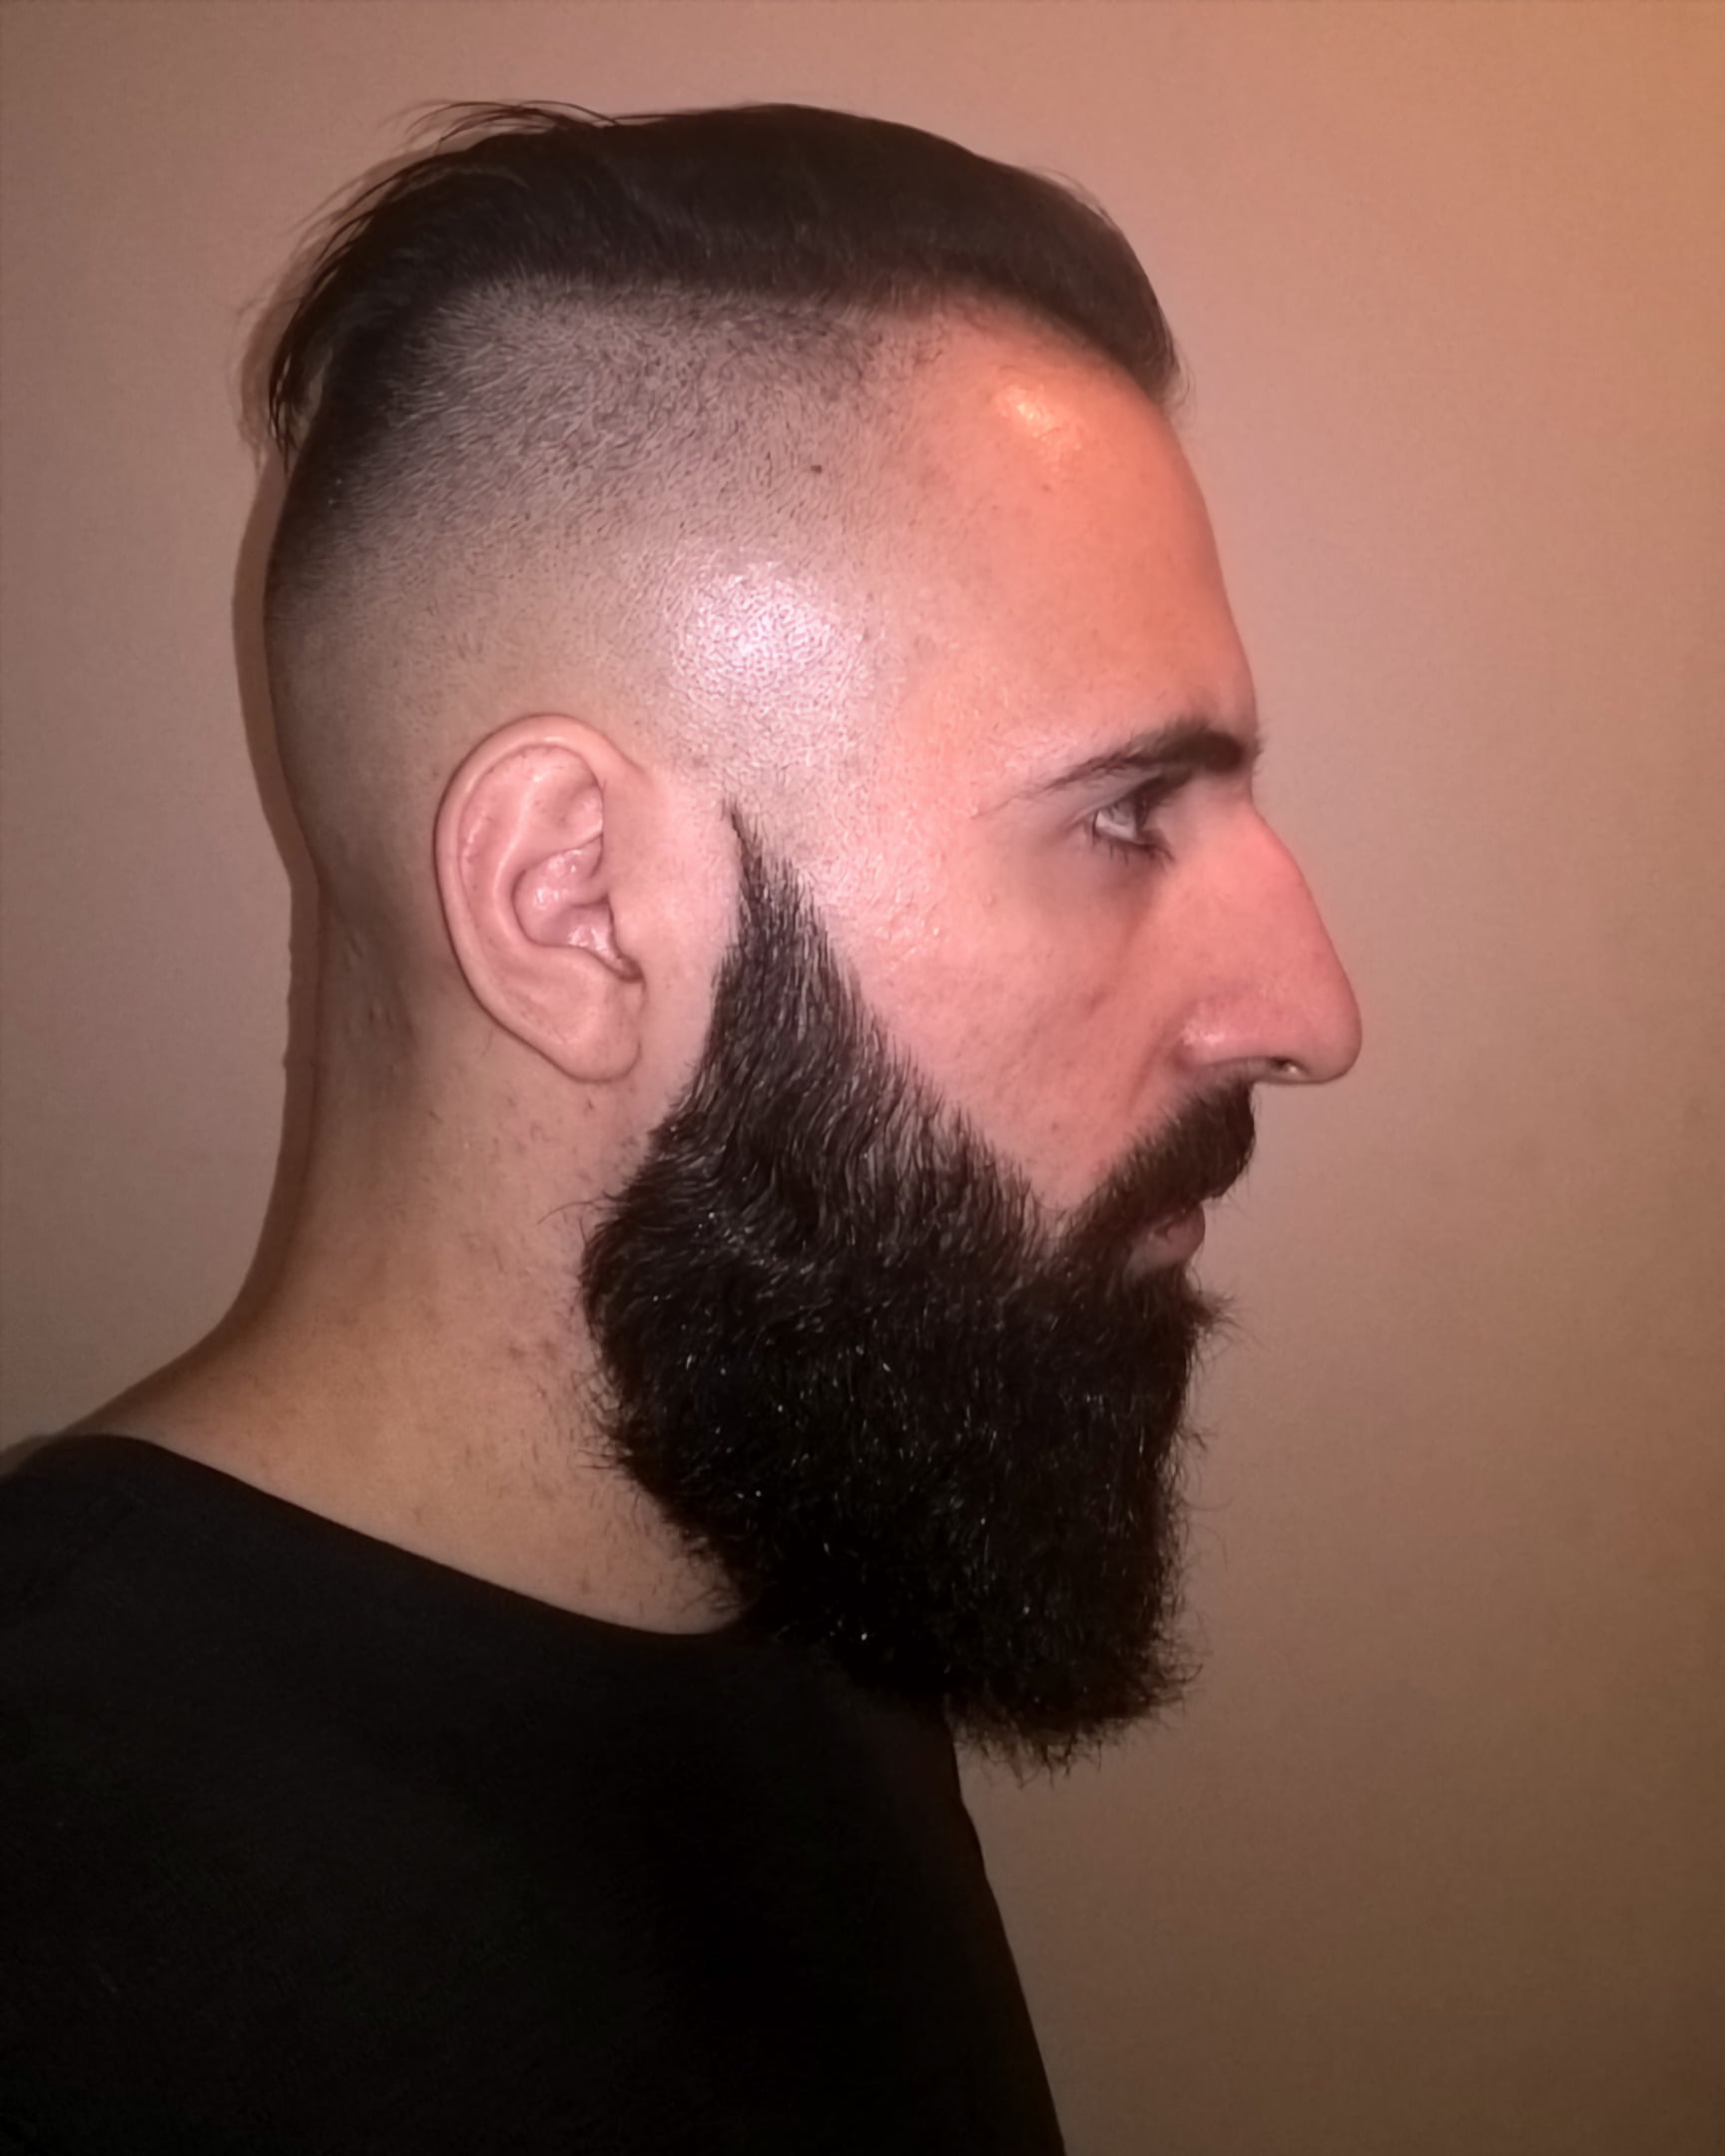 Undercut and Balded Fade with Longer Hair on Top